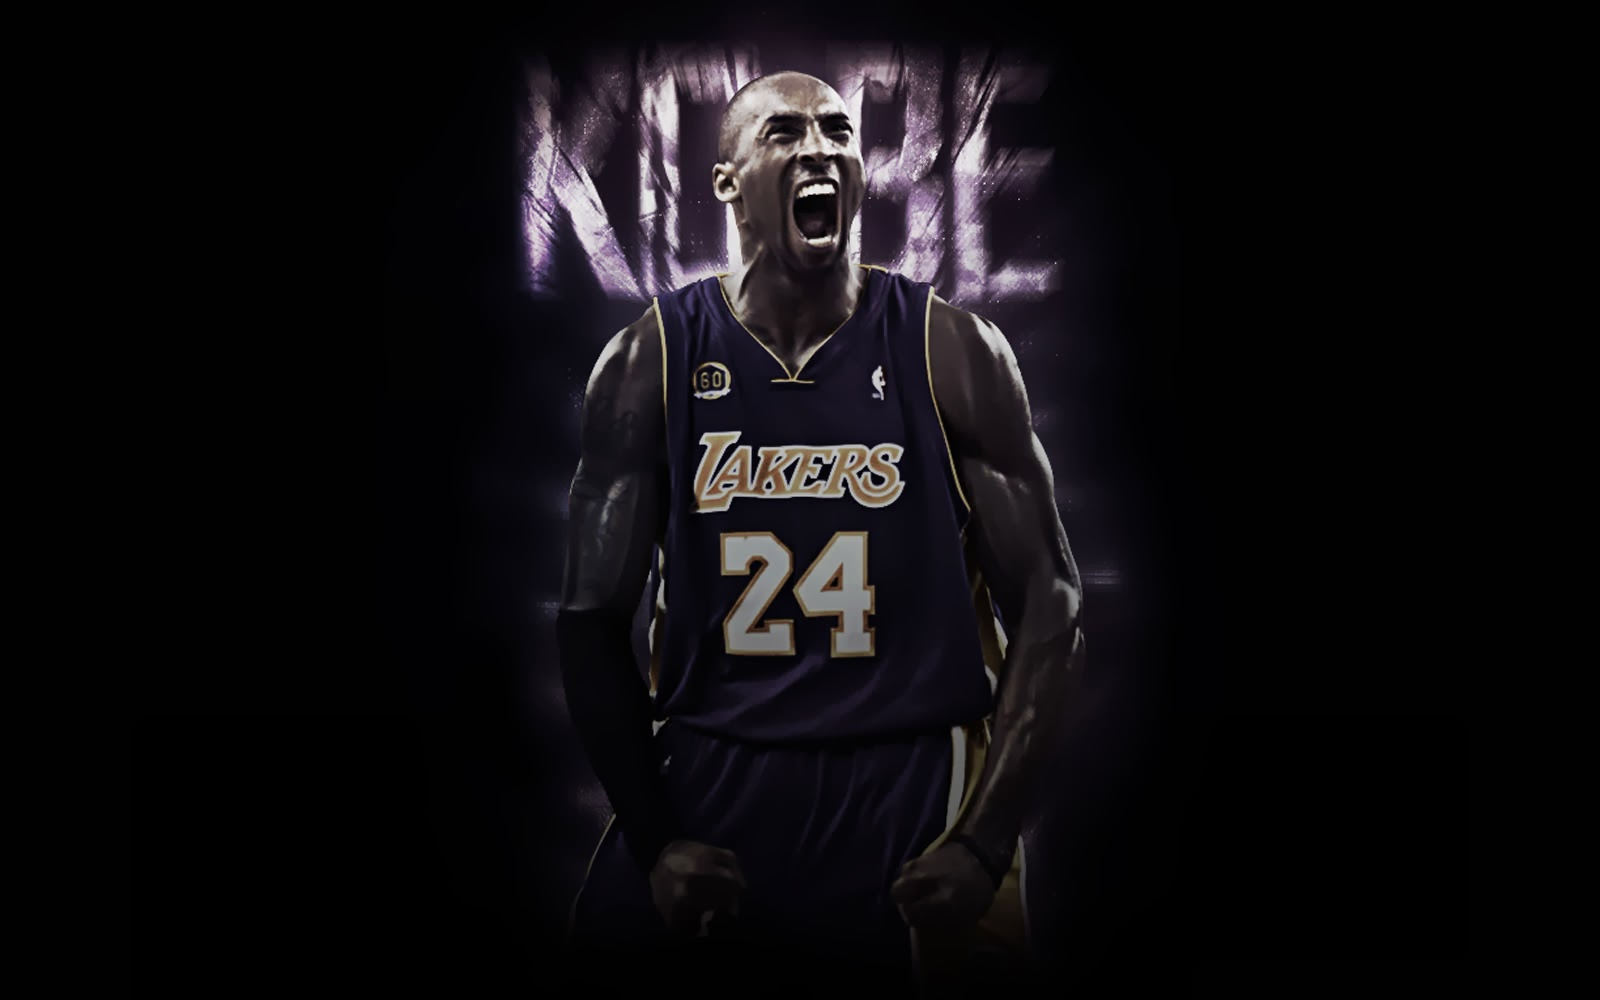 kobe bryant nice wallpapers - photo #11